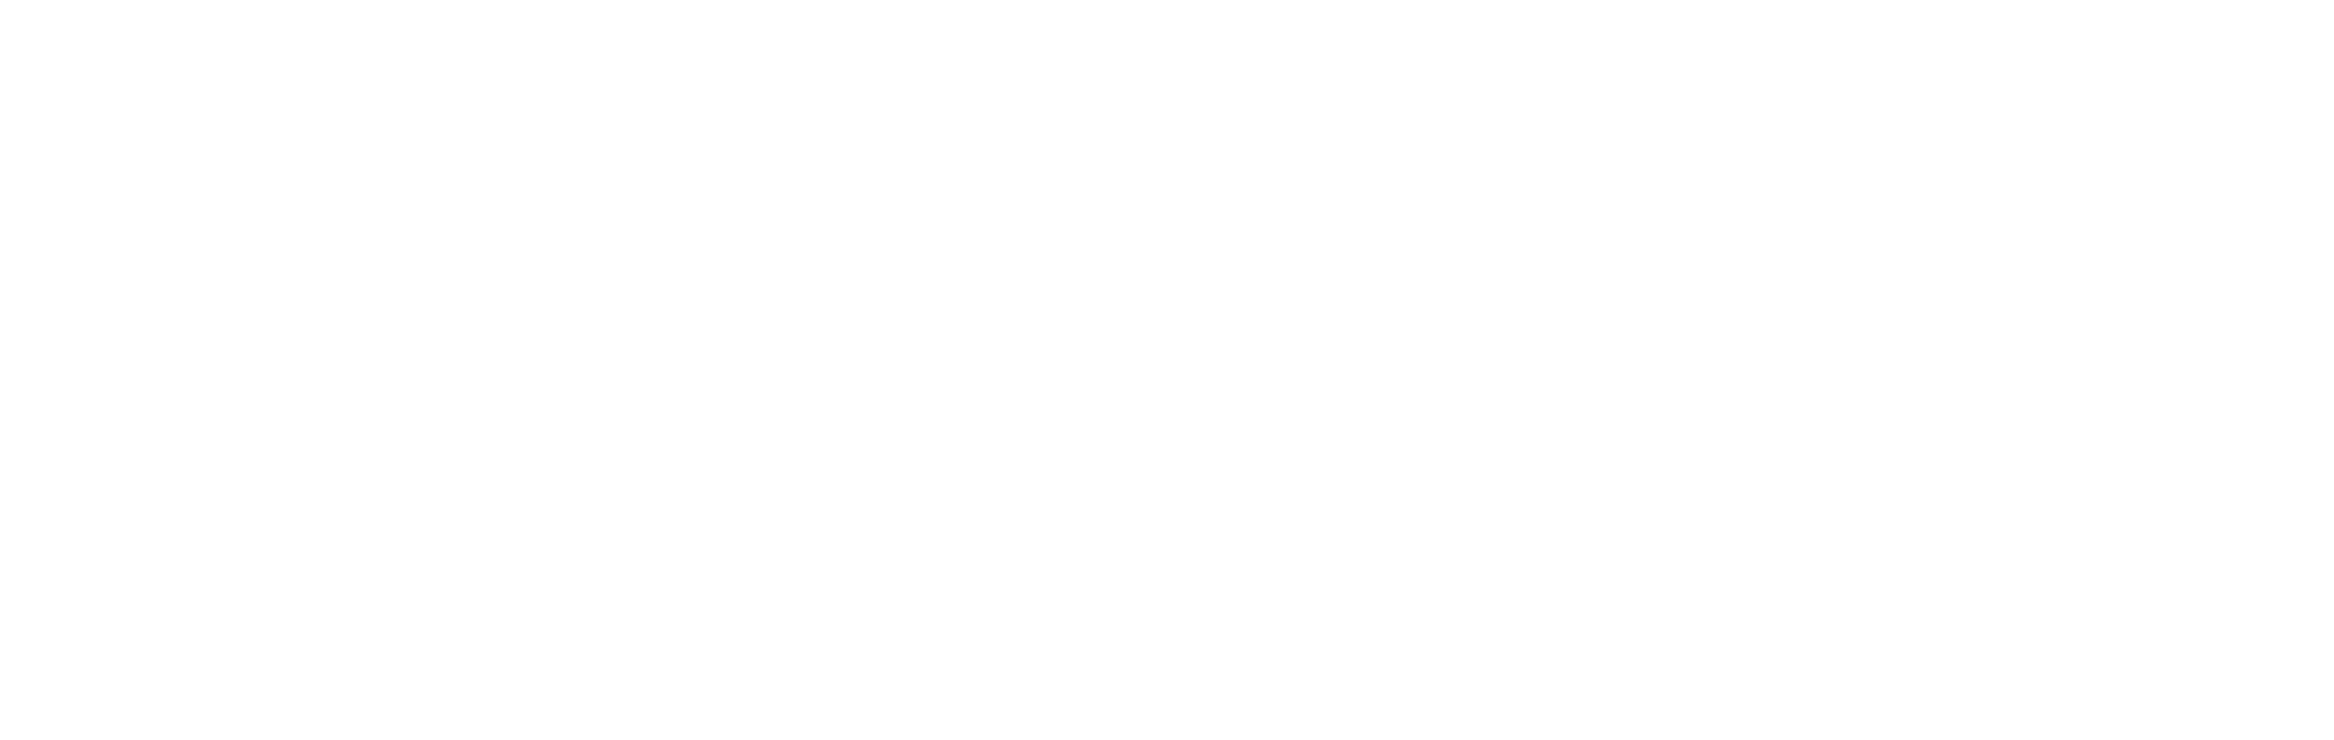 Garden Bar - White.png